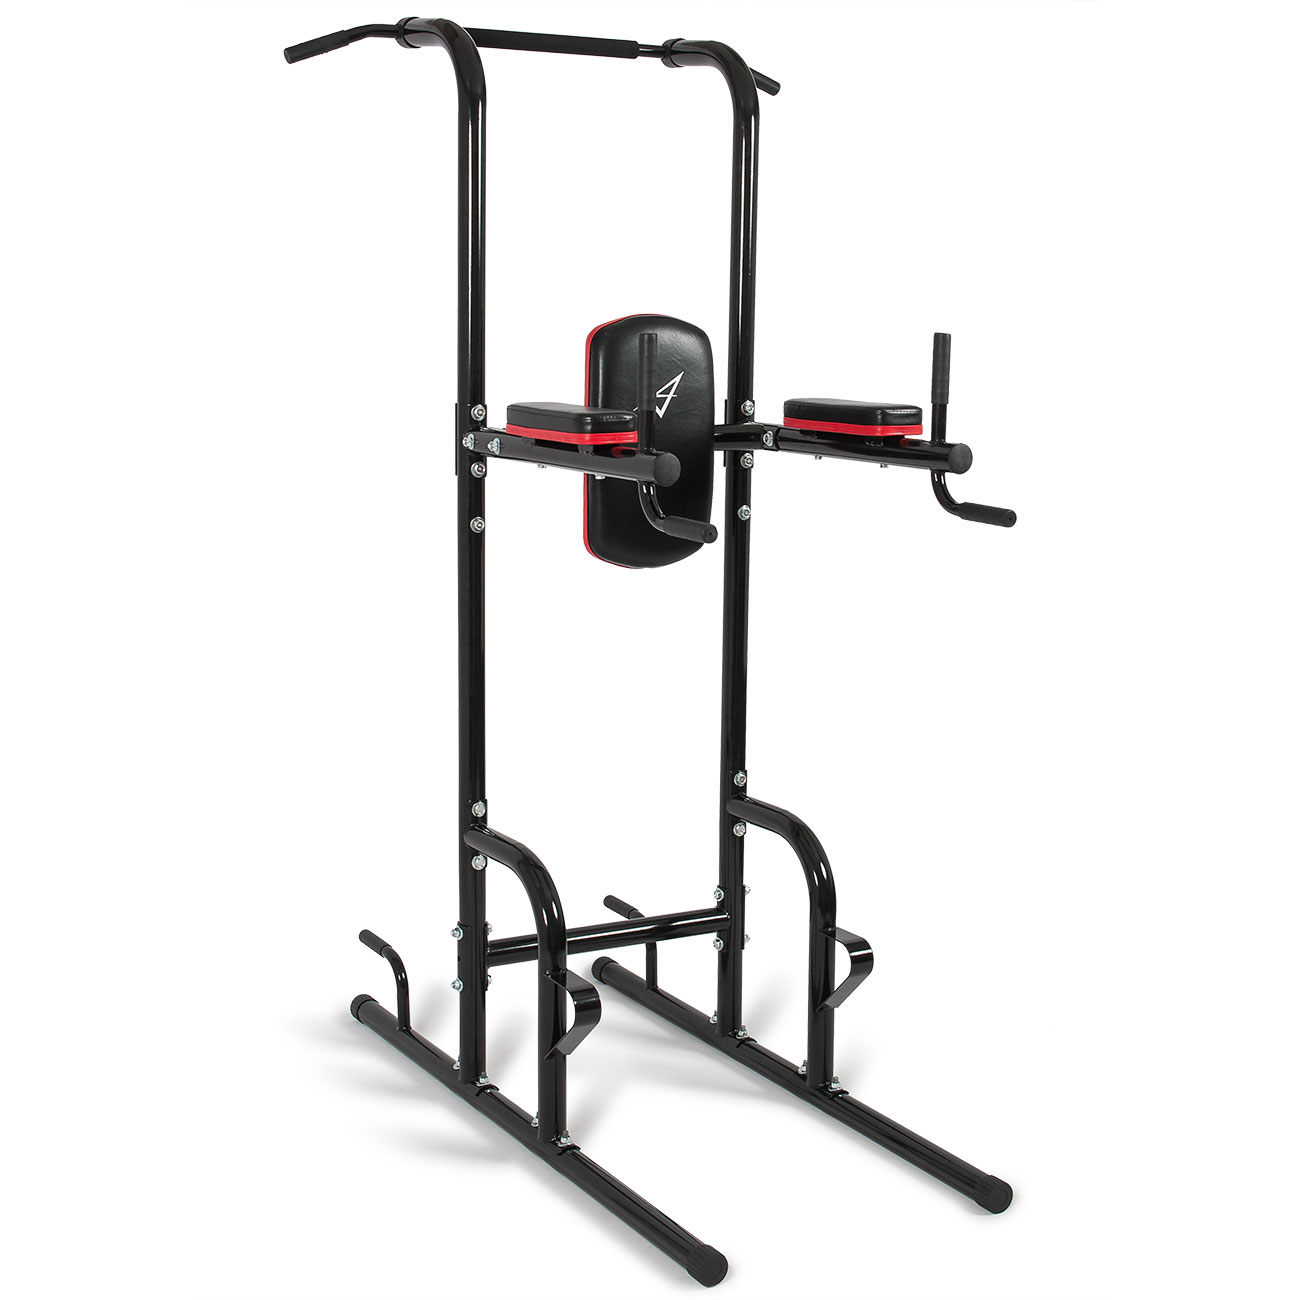 Akonza Power Tower, Multi Station Workout Pull-Up, Push-Up, Dip Station, Knee Raise with Cushion Pad, Black